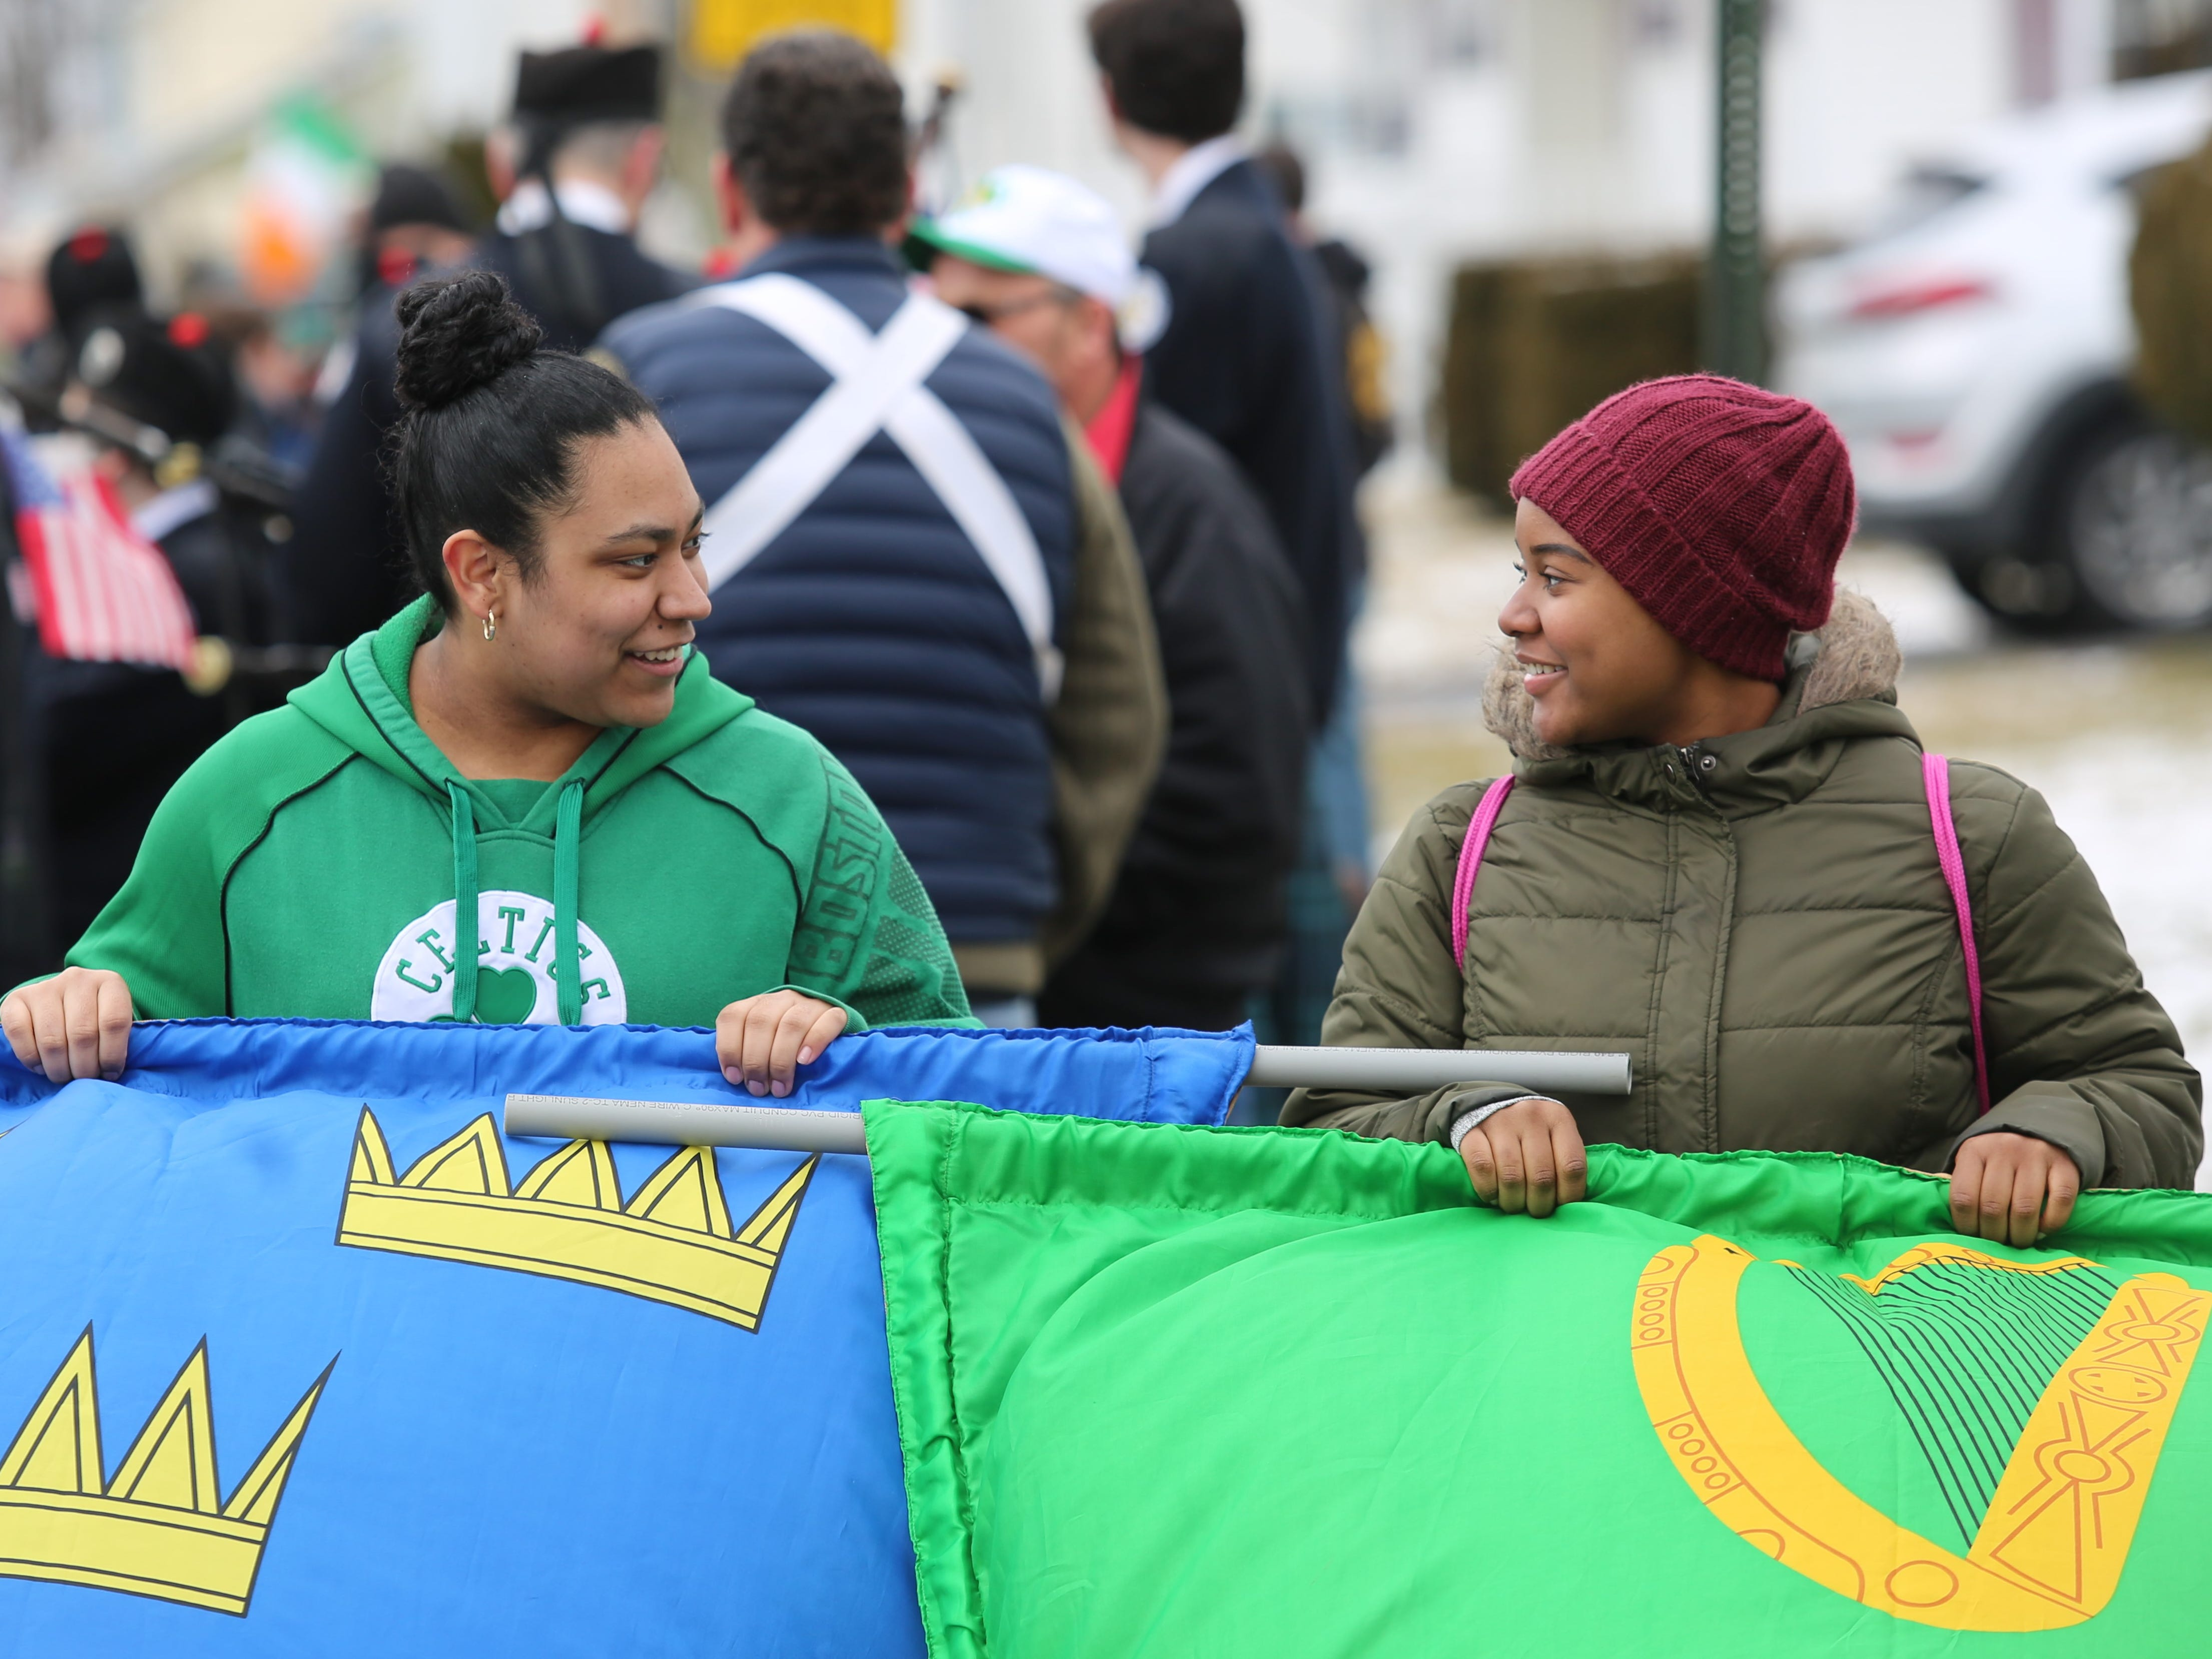 Sierra Morris (right) and Alyssa DeJesus (left), both 15-year-old students at Roy C. Ketcham High School, hold banners during the 24th annual Dutchess County St. Patrick's Day Parade held in Wappingers Falls on Saturday.